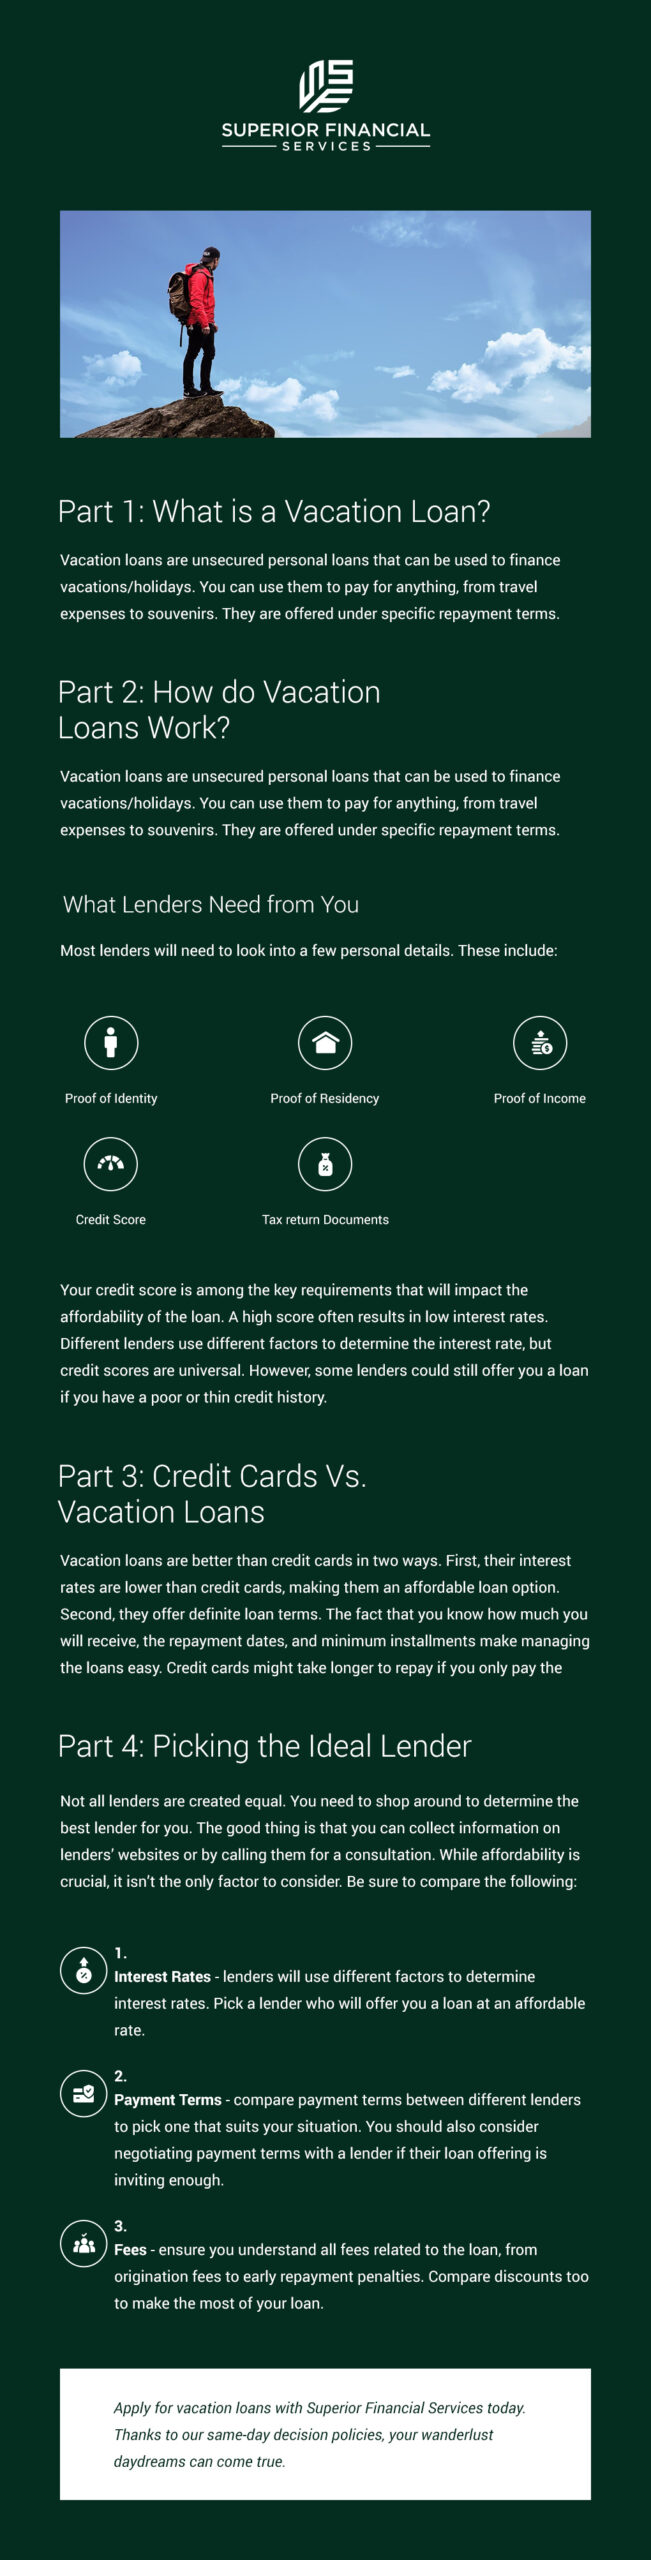 What Is a Vacation Loan?